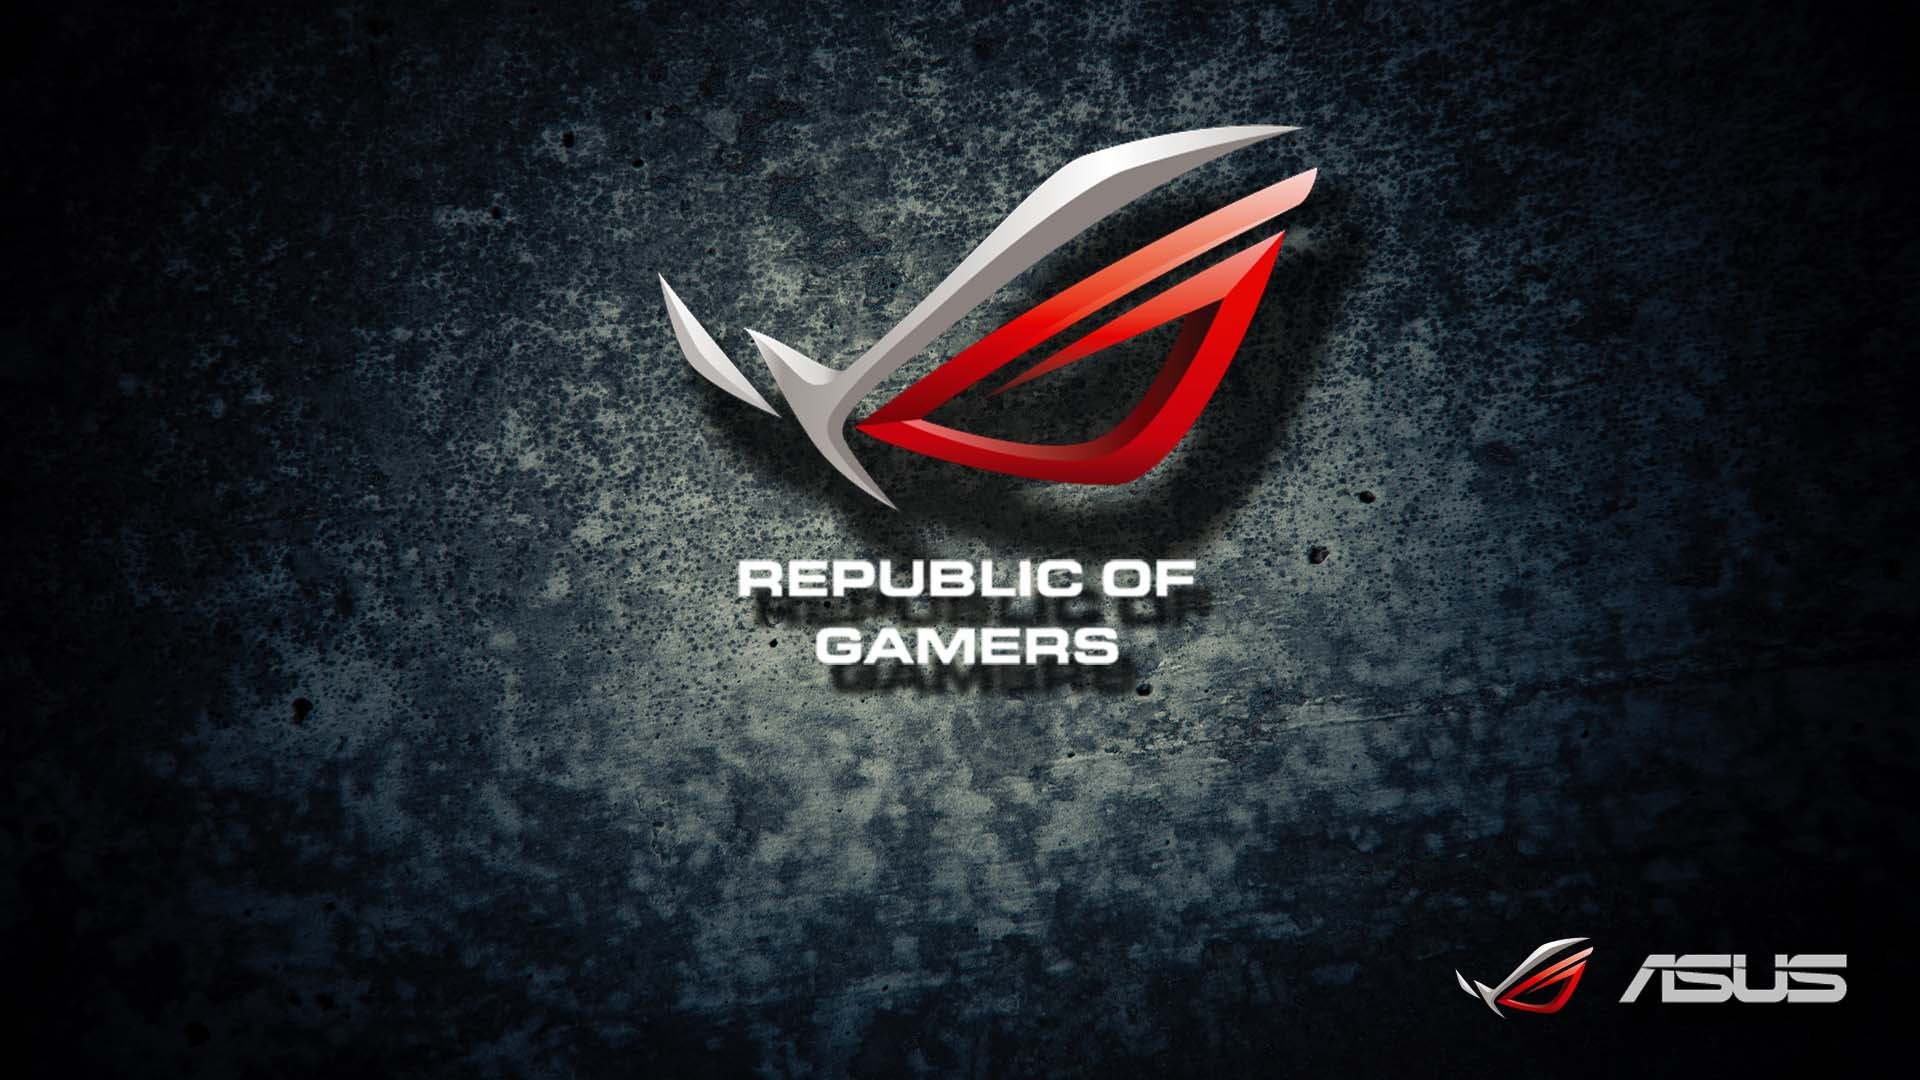 Wallpaper Competition: Vote For Your Favorite – Republic of Gamers